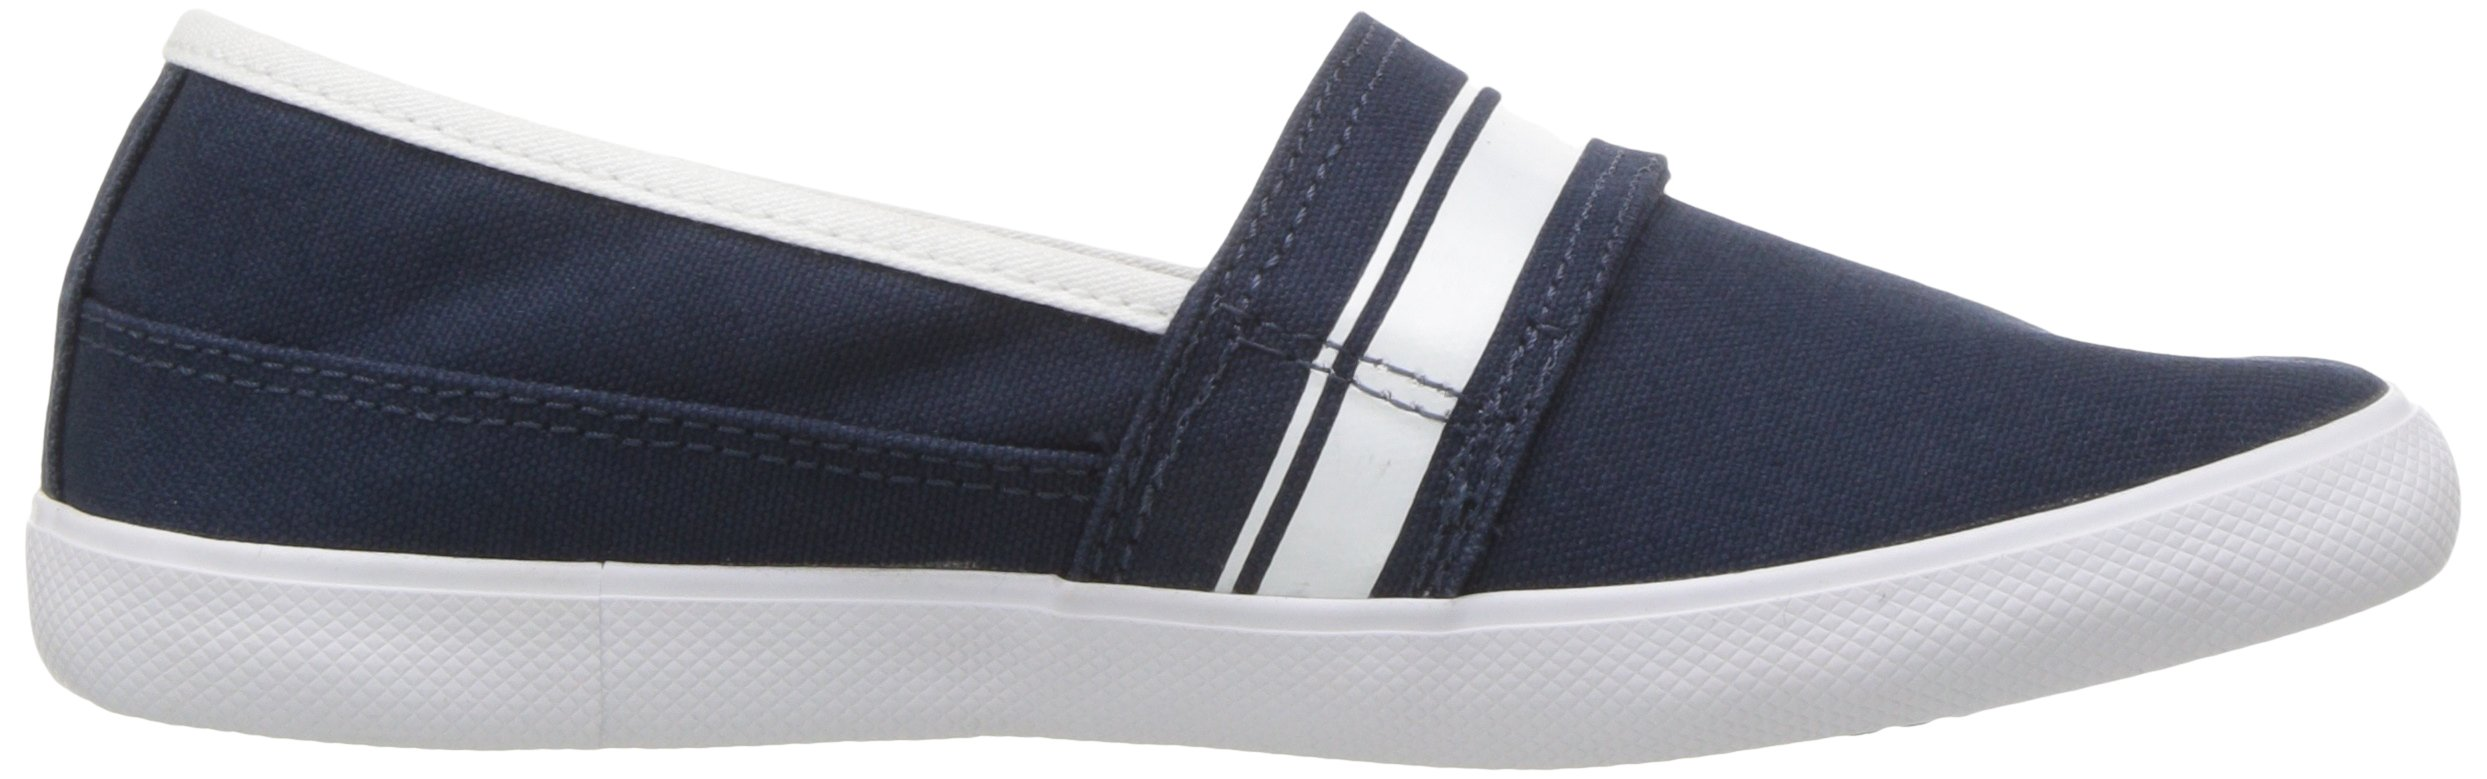 Lacoste Kids' Marice Slip-ONS,Navy/White Cotton Canvas,13. M US Little Kid by Lacoste (Image #6)